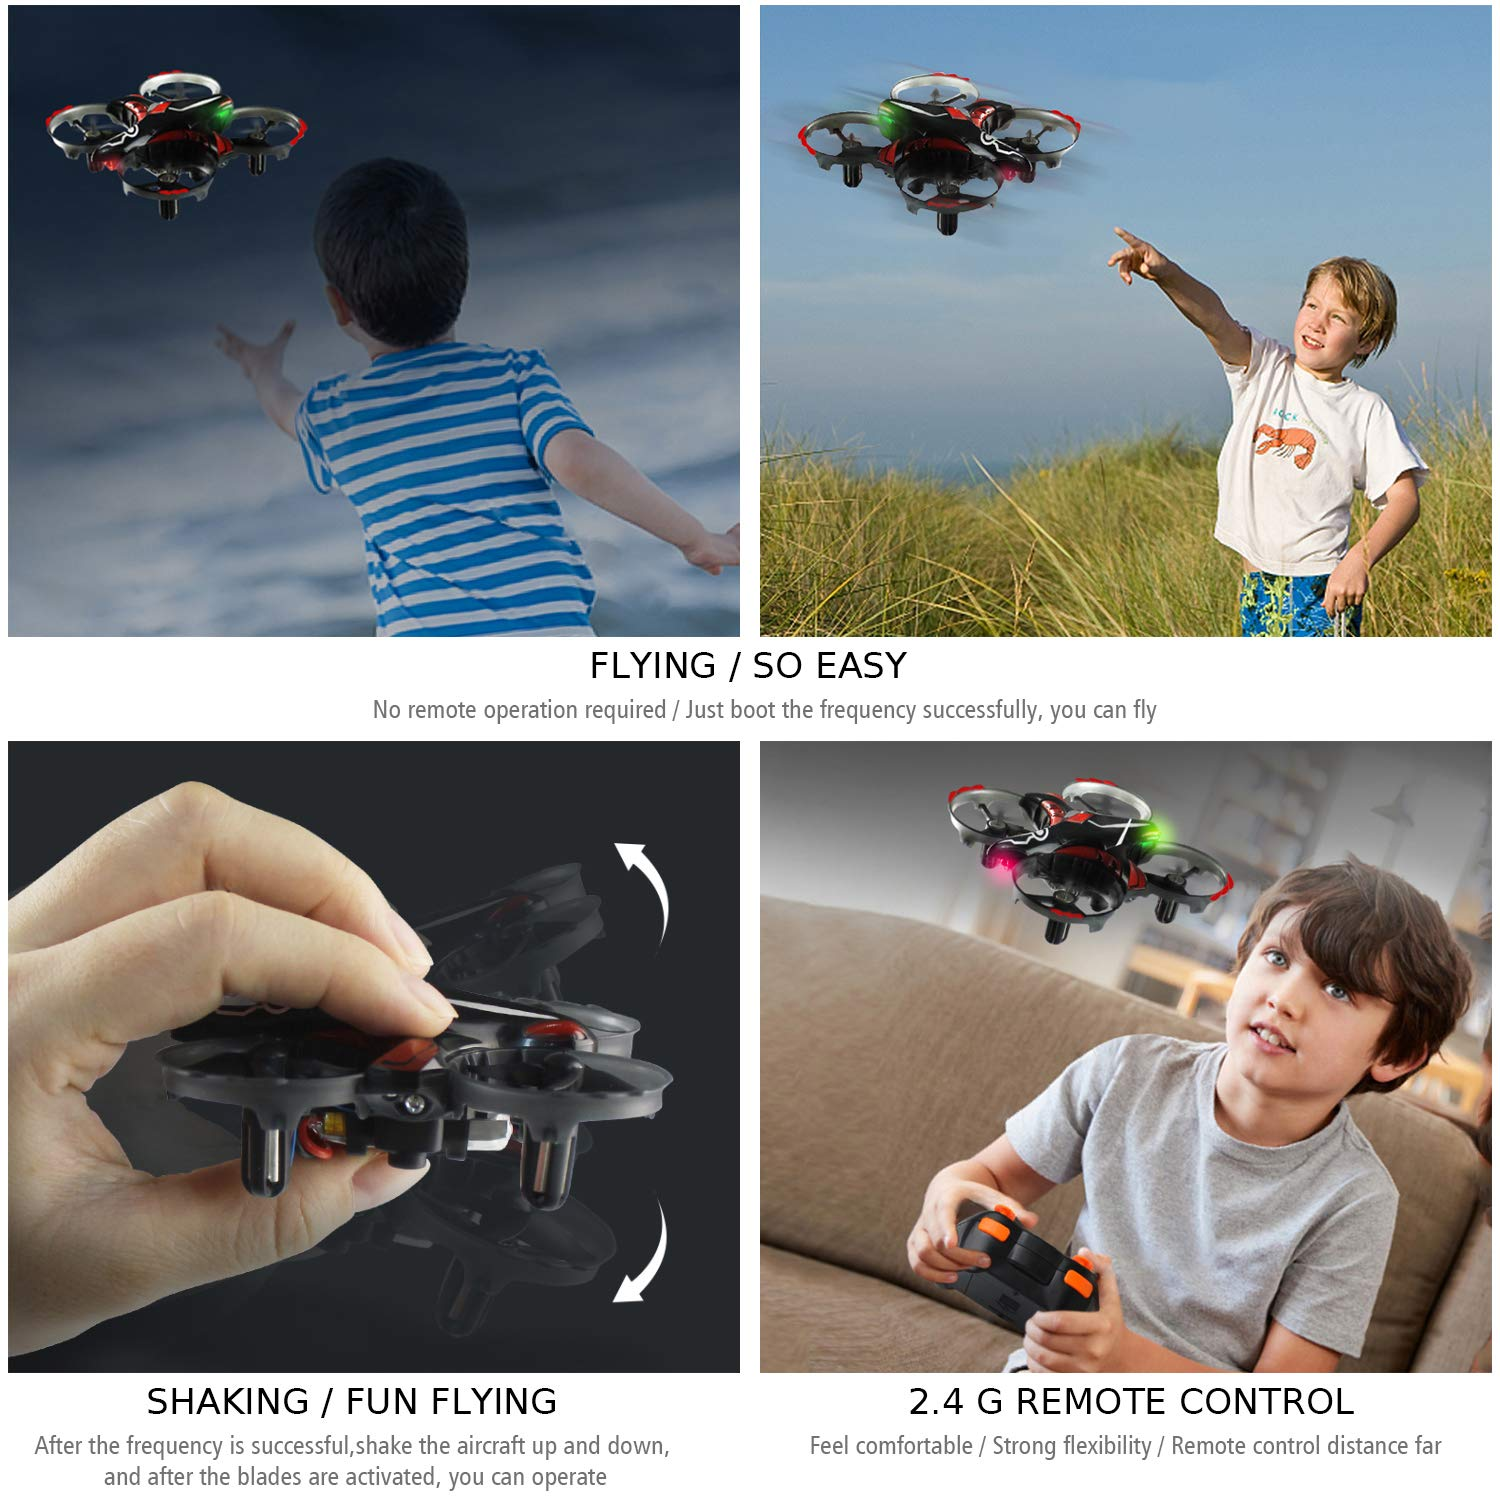 QOVFL06NDL2D55N0186I4TRGM RC Helicopter Headless Mode 3D Flip One Key Return B bangcool Micro Drone Interactive Best Drones Gesture Sensing Mini Quadcopter Drone with 6-Axis Gyroscope Red Mini Drones for Kids